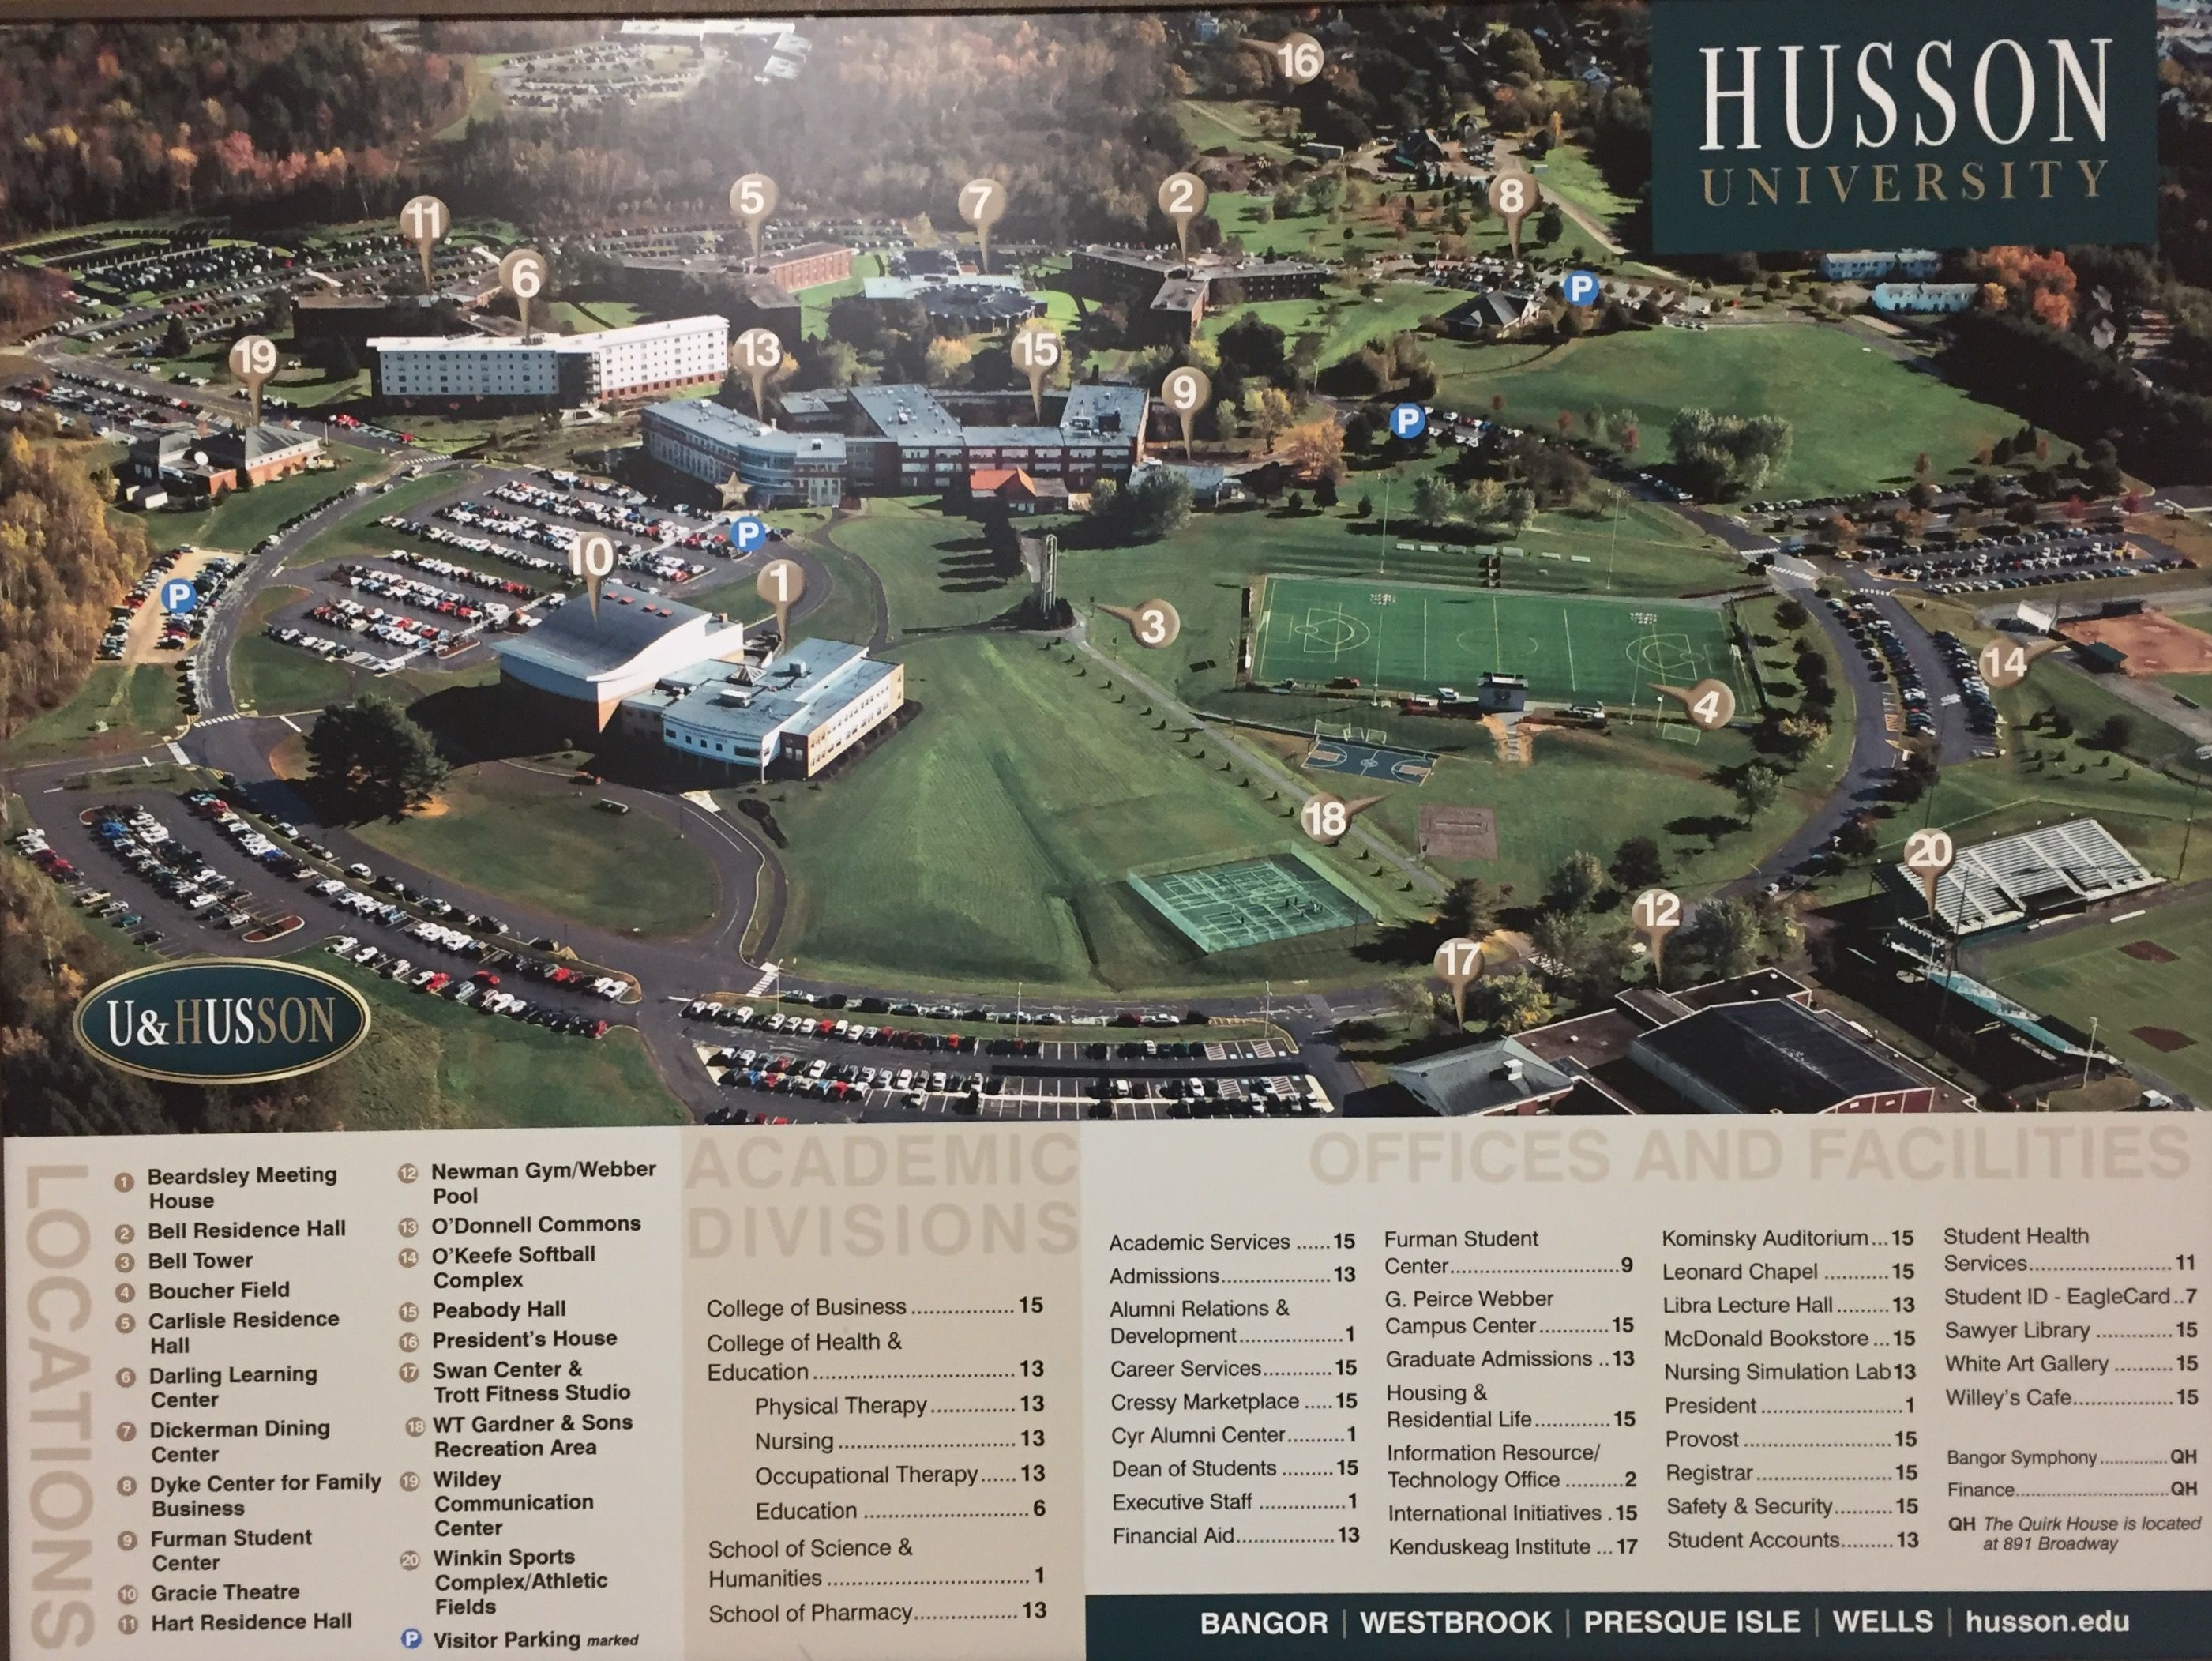 Husson University Campus Map.Husson University Campus Map University University Campus Map